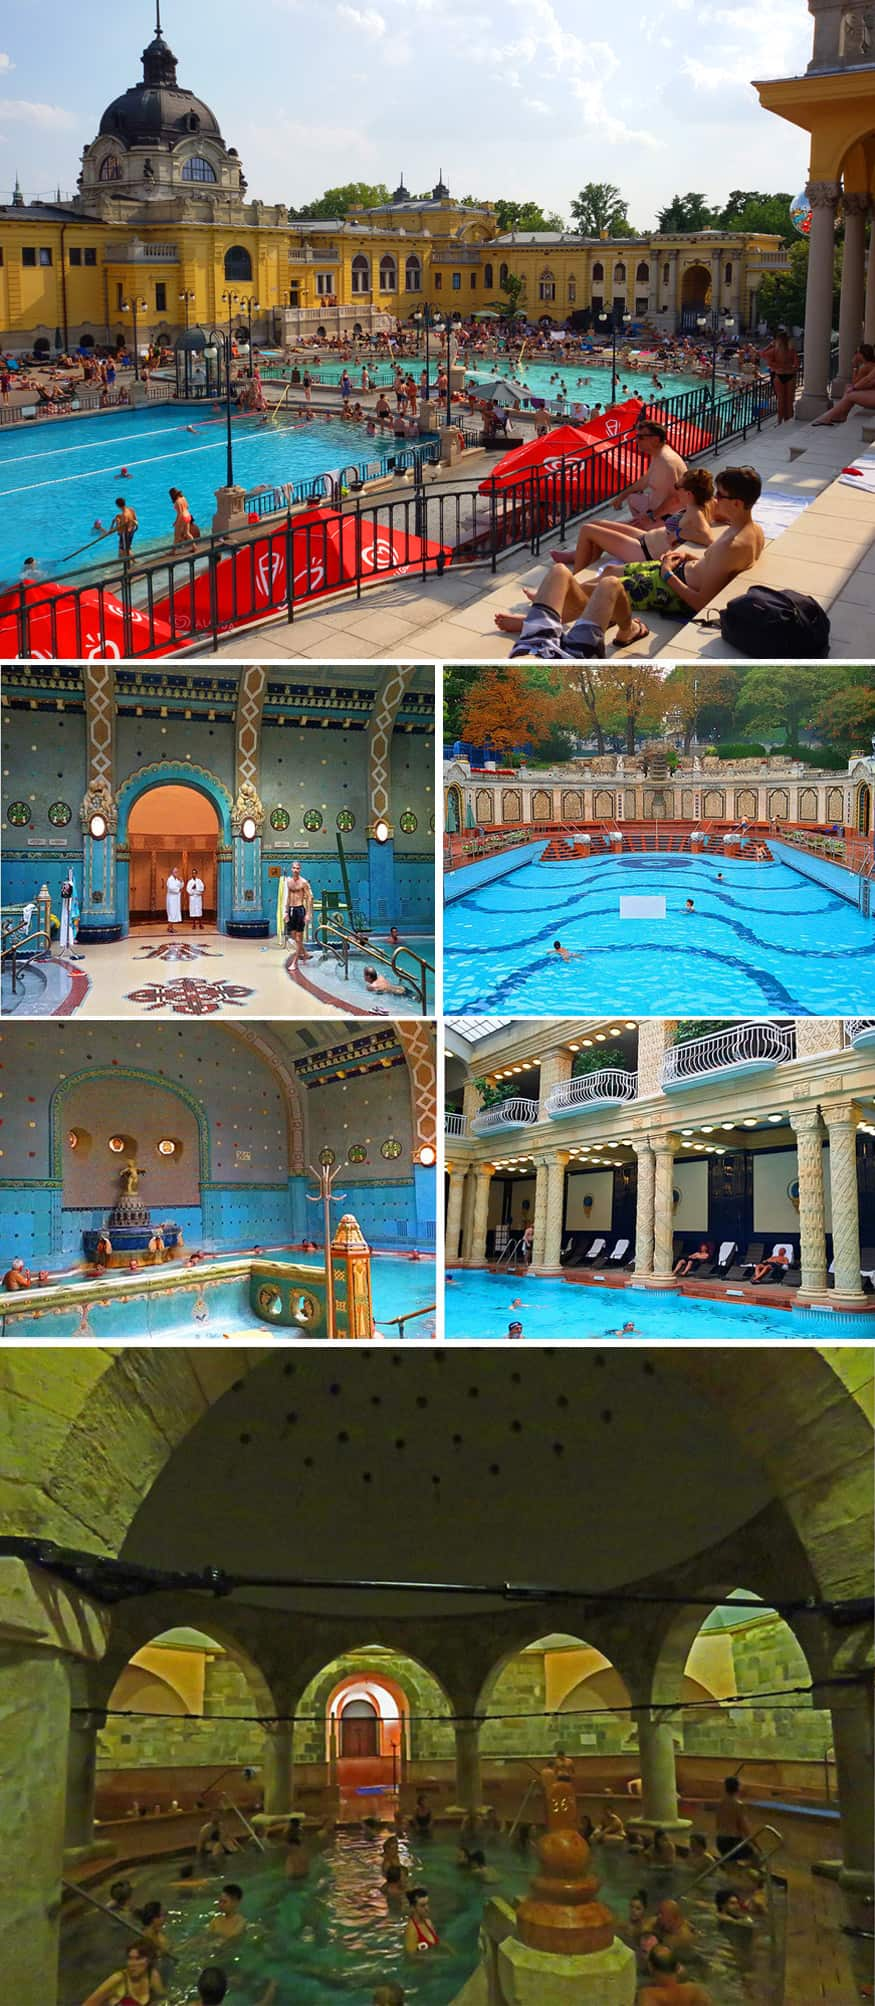 Thermal baths in Budapest. Prague or Budapest – which to visit?